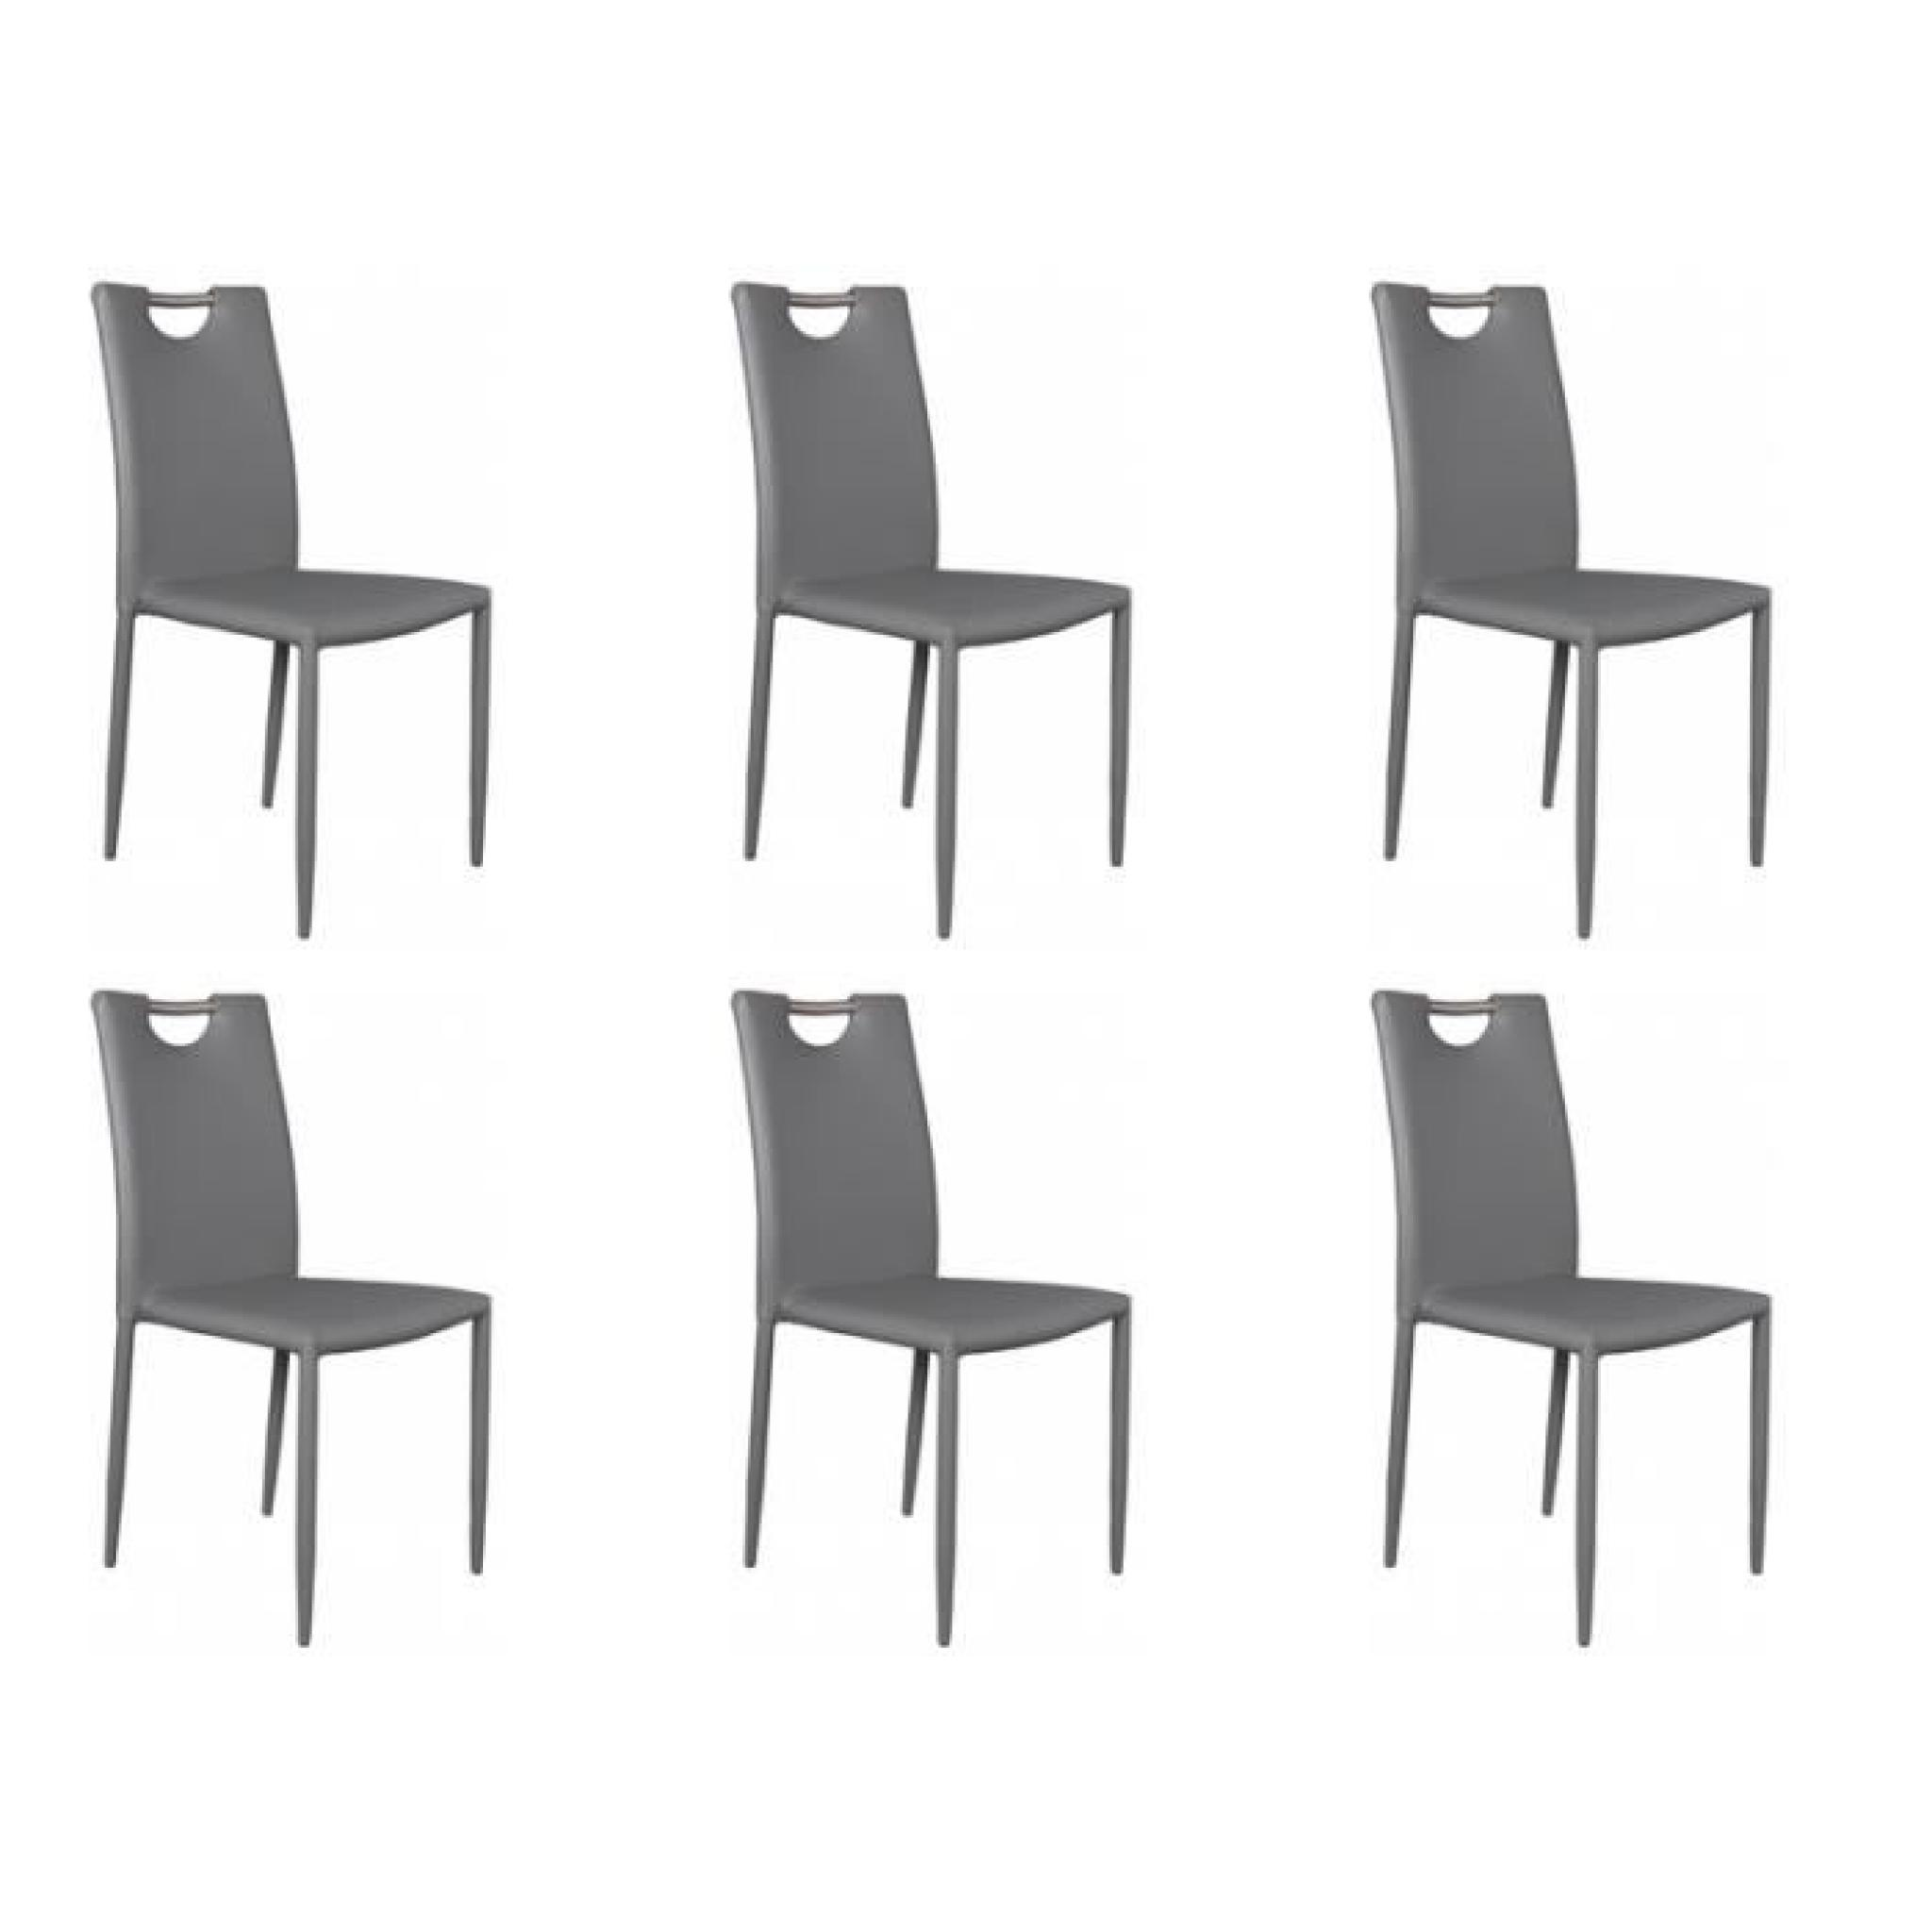 kira lot 6 chaises grises achat vente chaise salle a. Black Bedroom Furniture Sets. Home Design Ideas